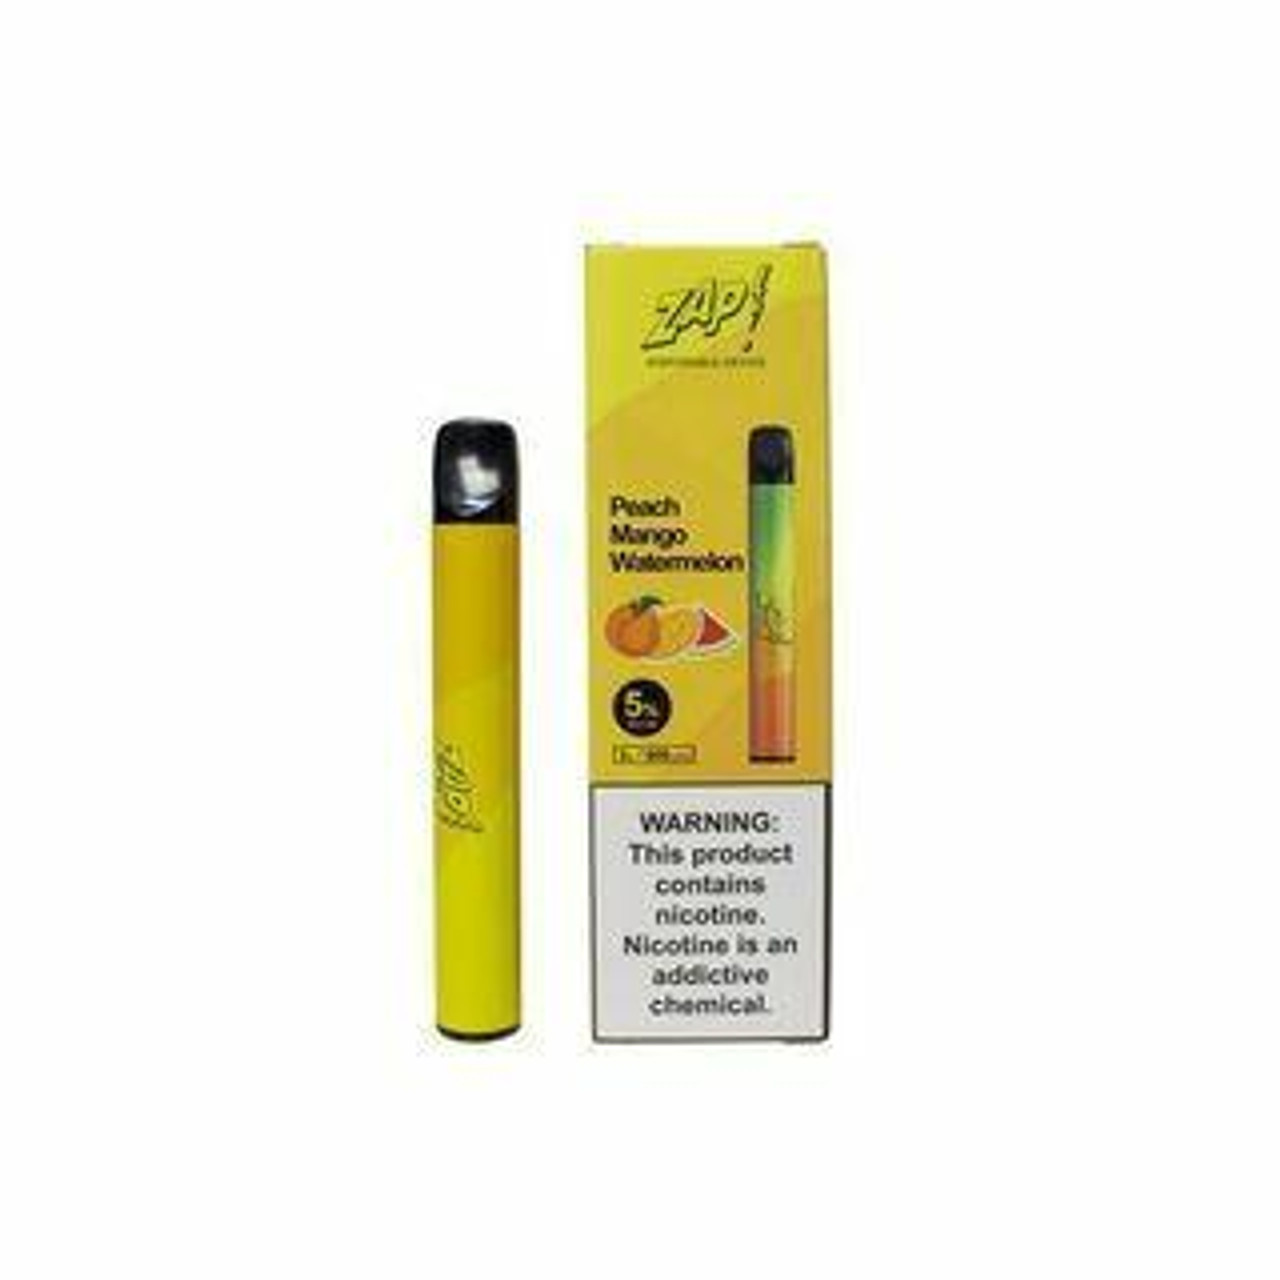 zap Zap Disposable - 5percent 600 Puffs - 10pk at The Cloud Supply